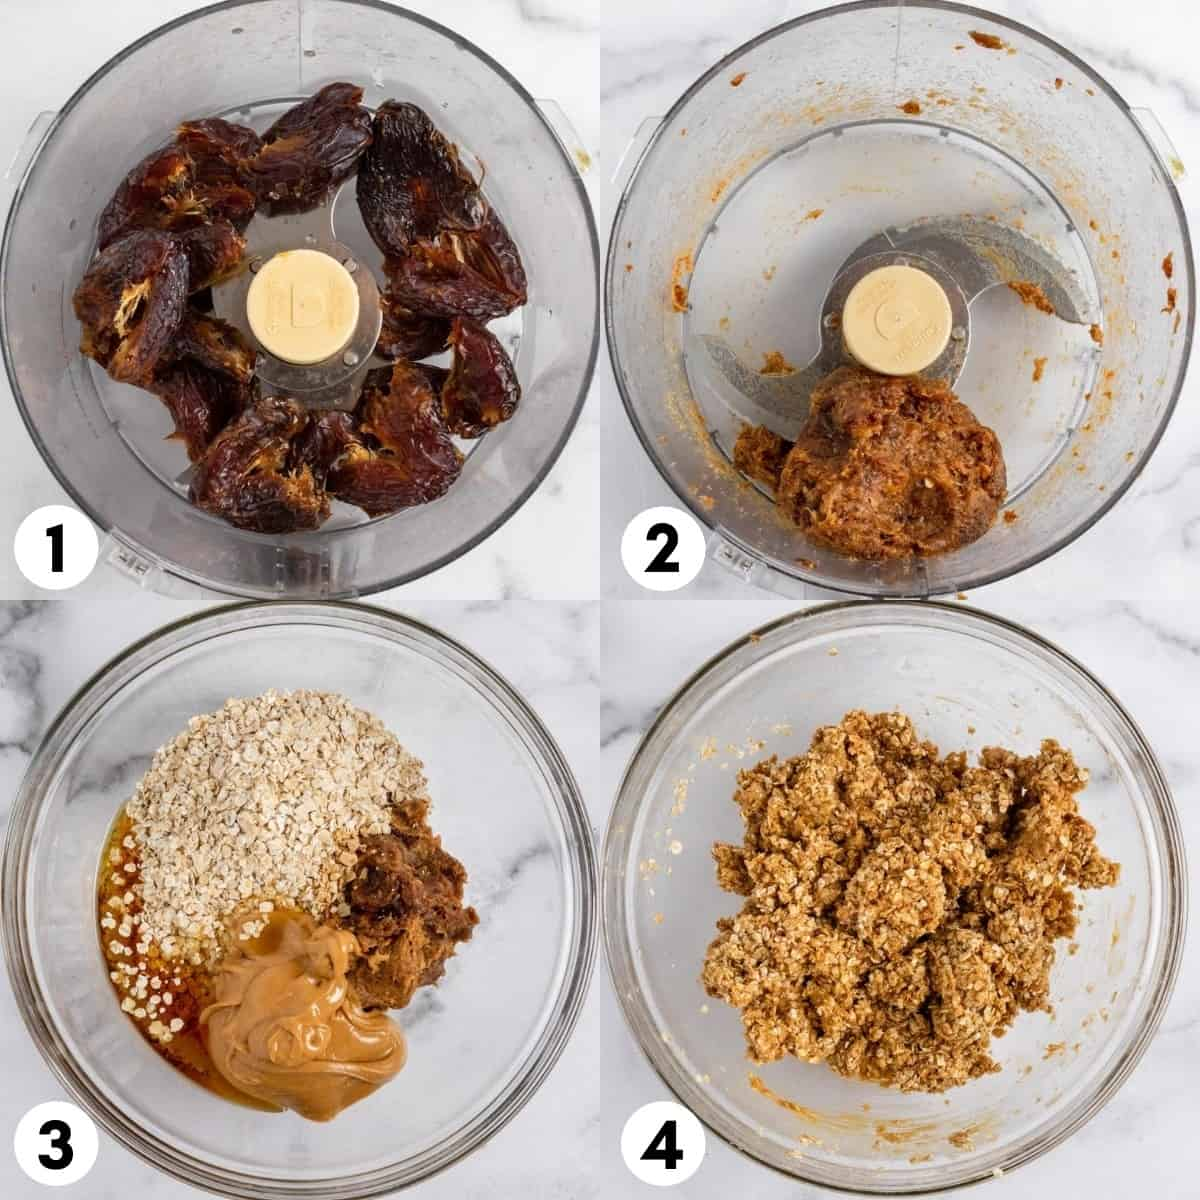 Dates processed in a food processor and mixed in with oats and peanut butter in bowl.